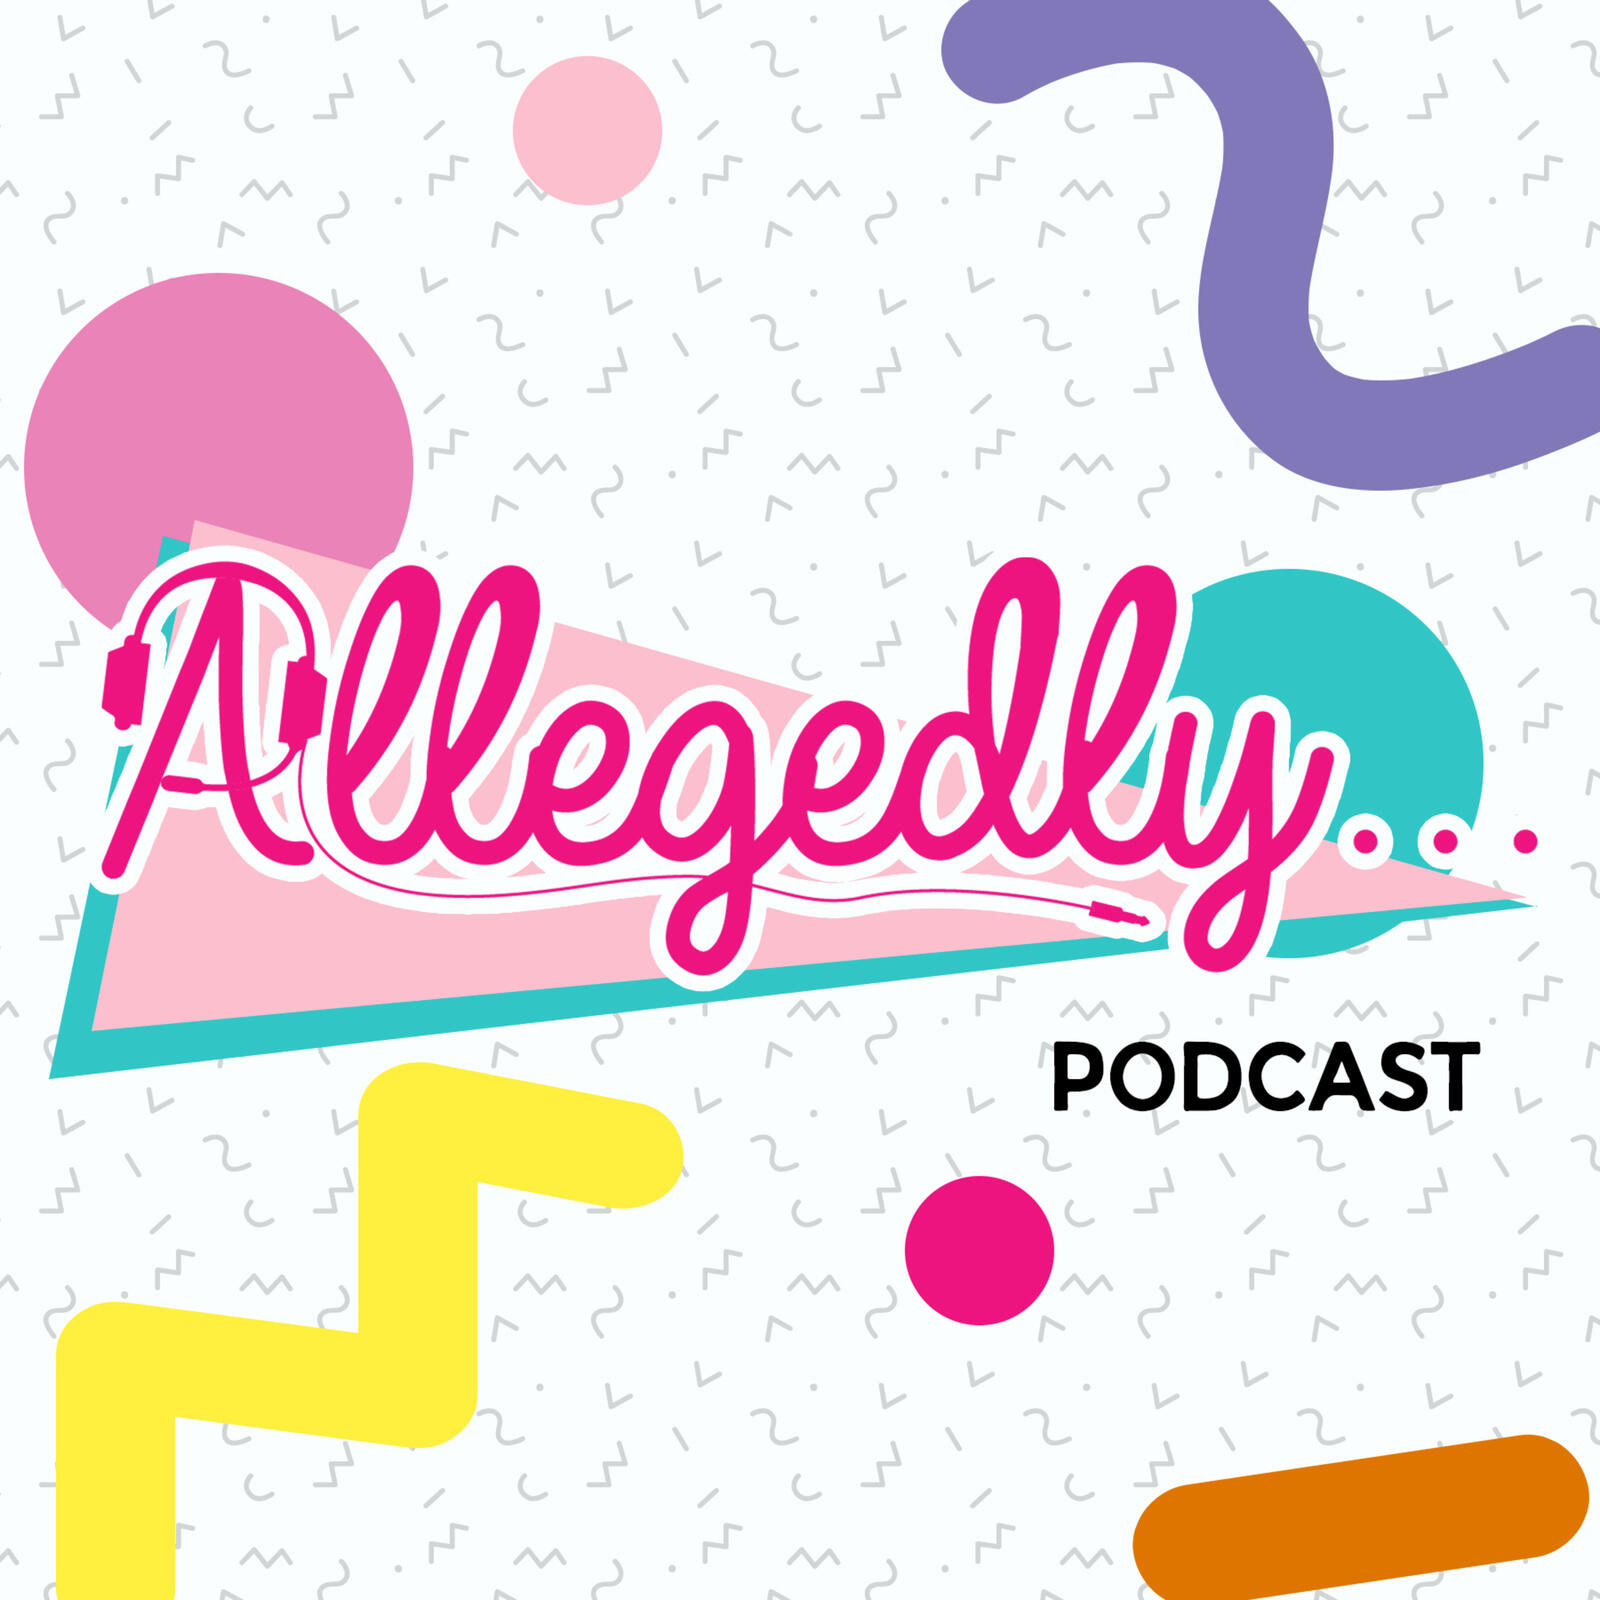 4: Allegedly… Ben and J.Lo are one big PR stunt, Madison LeCroy is trouble, Kim slept with Drake, Kourtney and Travis are engaged, Rob Kardashian is nowhere to be found, and Kendall Jenner stole tequila